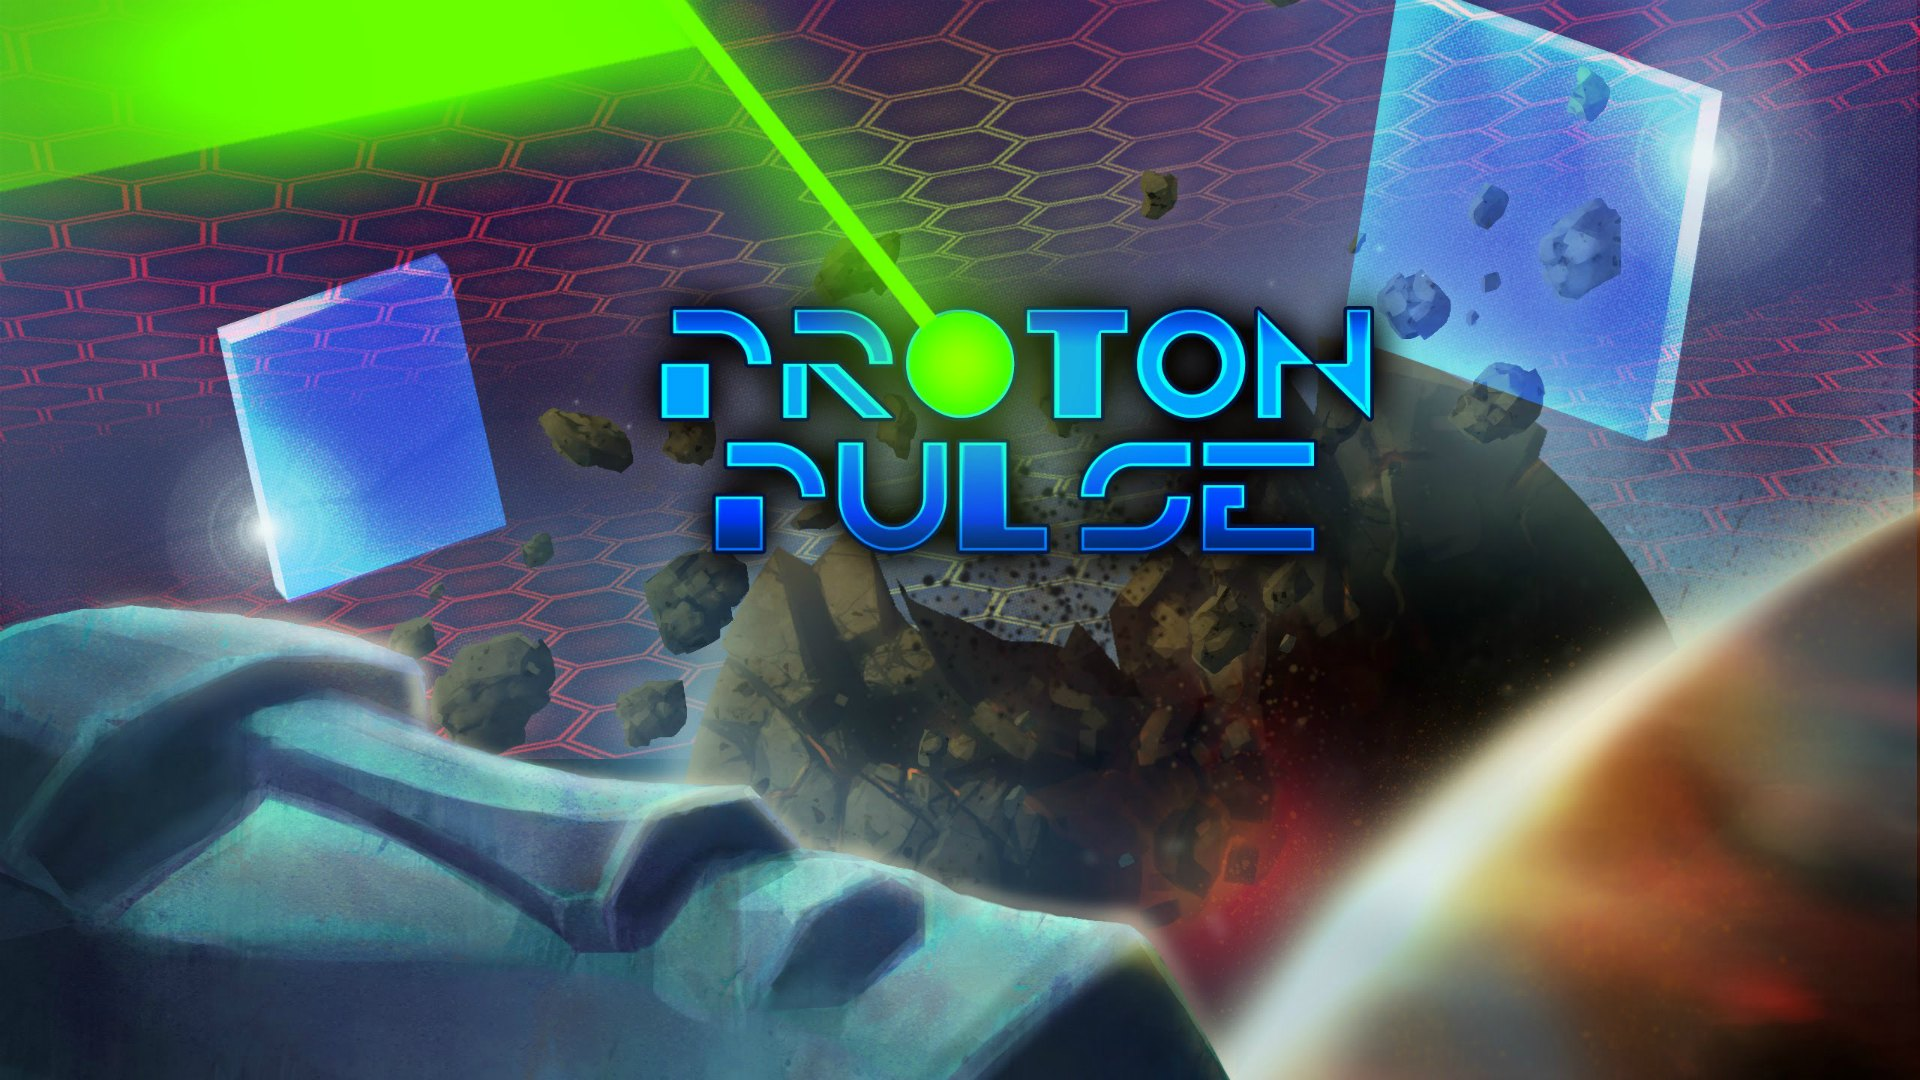 c48f25dfc8b  Proton Pulse  Free on Android for Google Cardboard